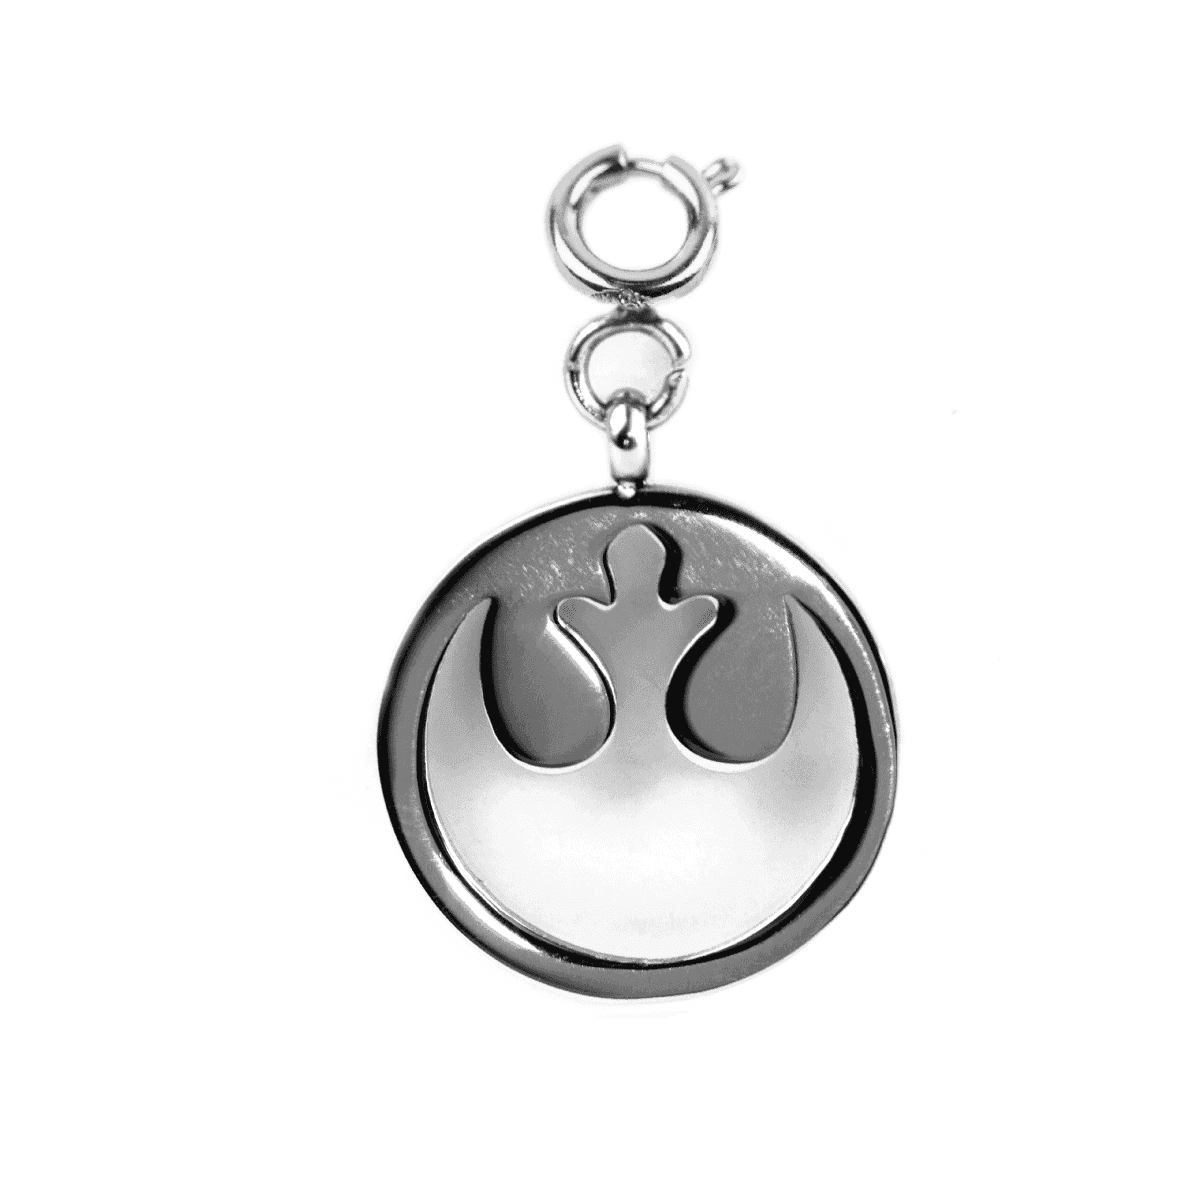 Rebel Alliance - Étiquette de charme de bracelet Star Wars